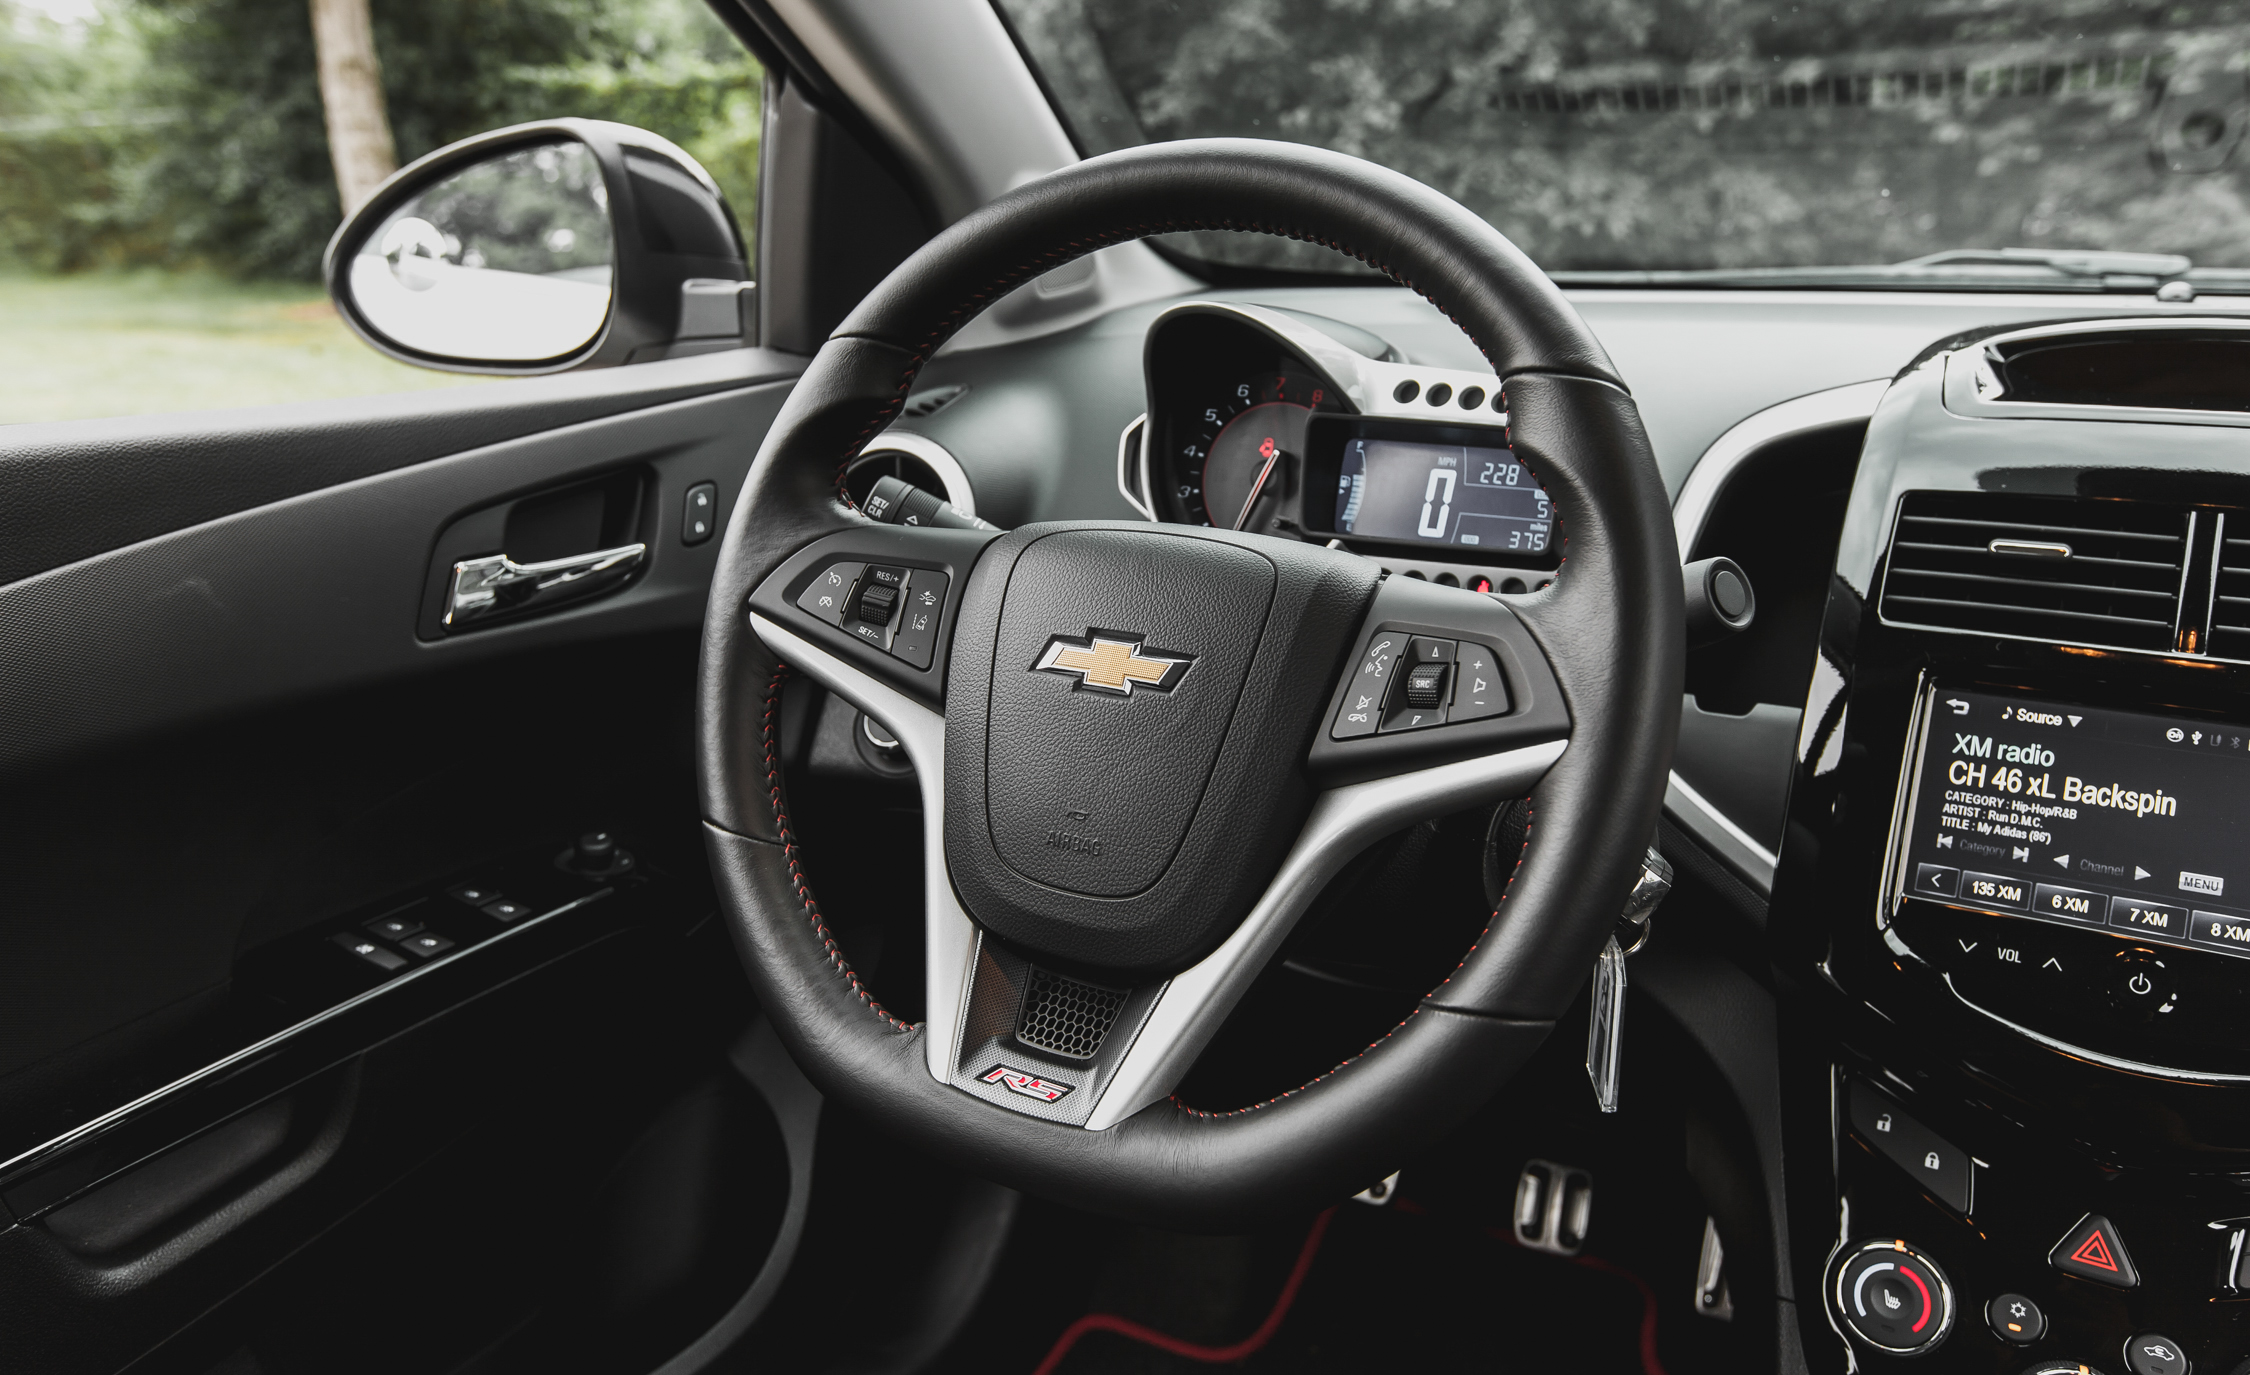 2014 Chevrolet Sonic RS Sedan Interior (Photo 25 of 27)